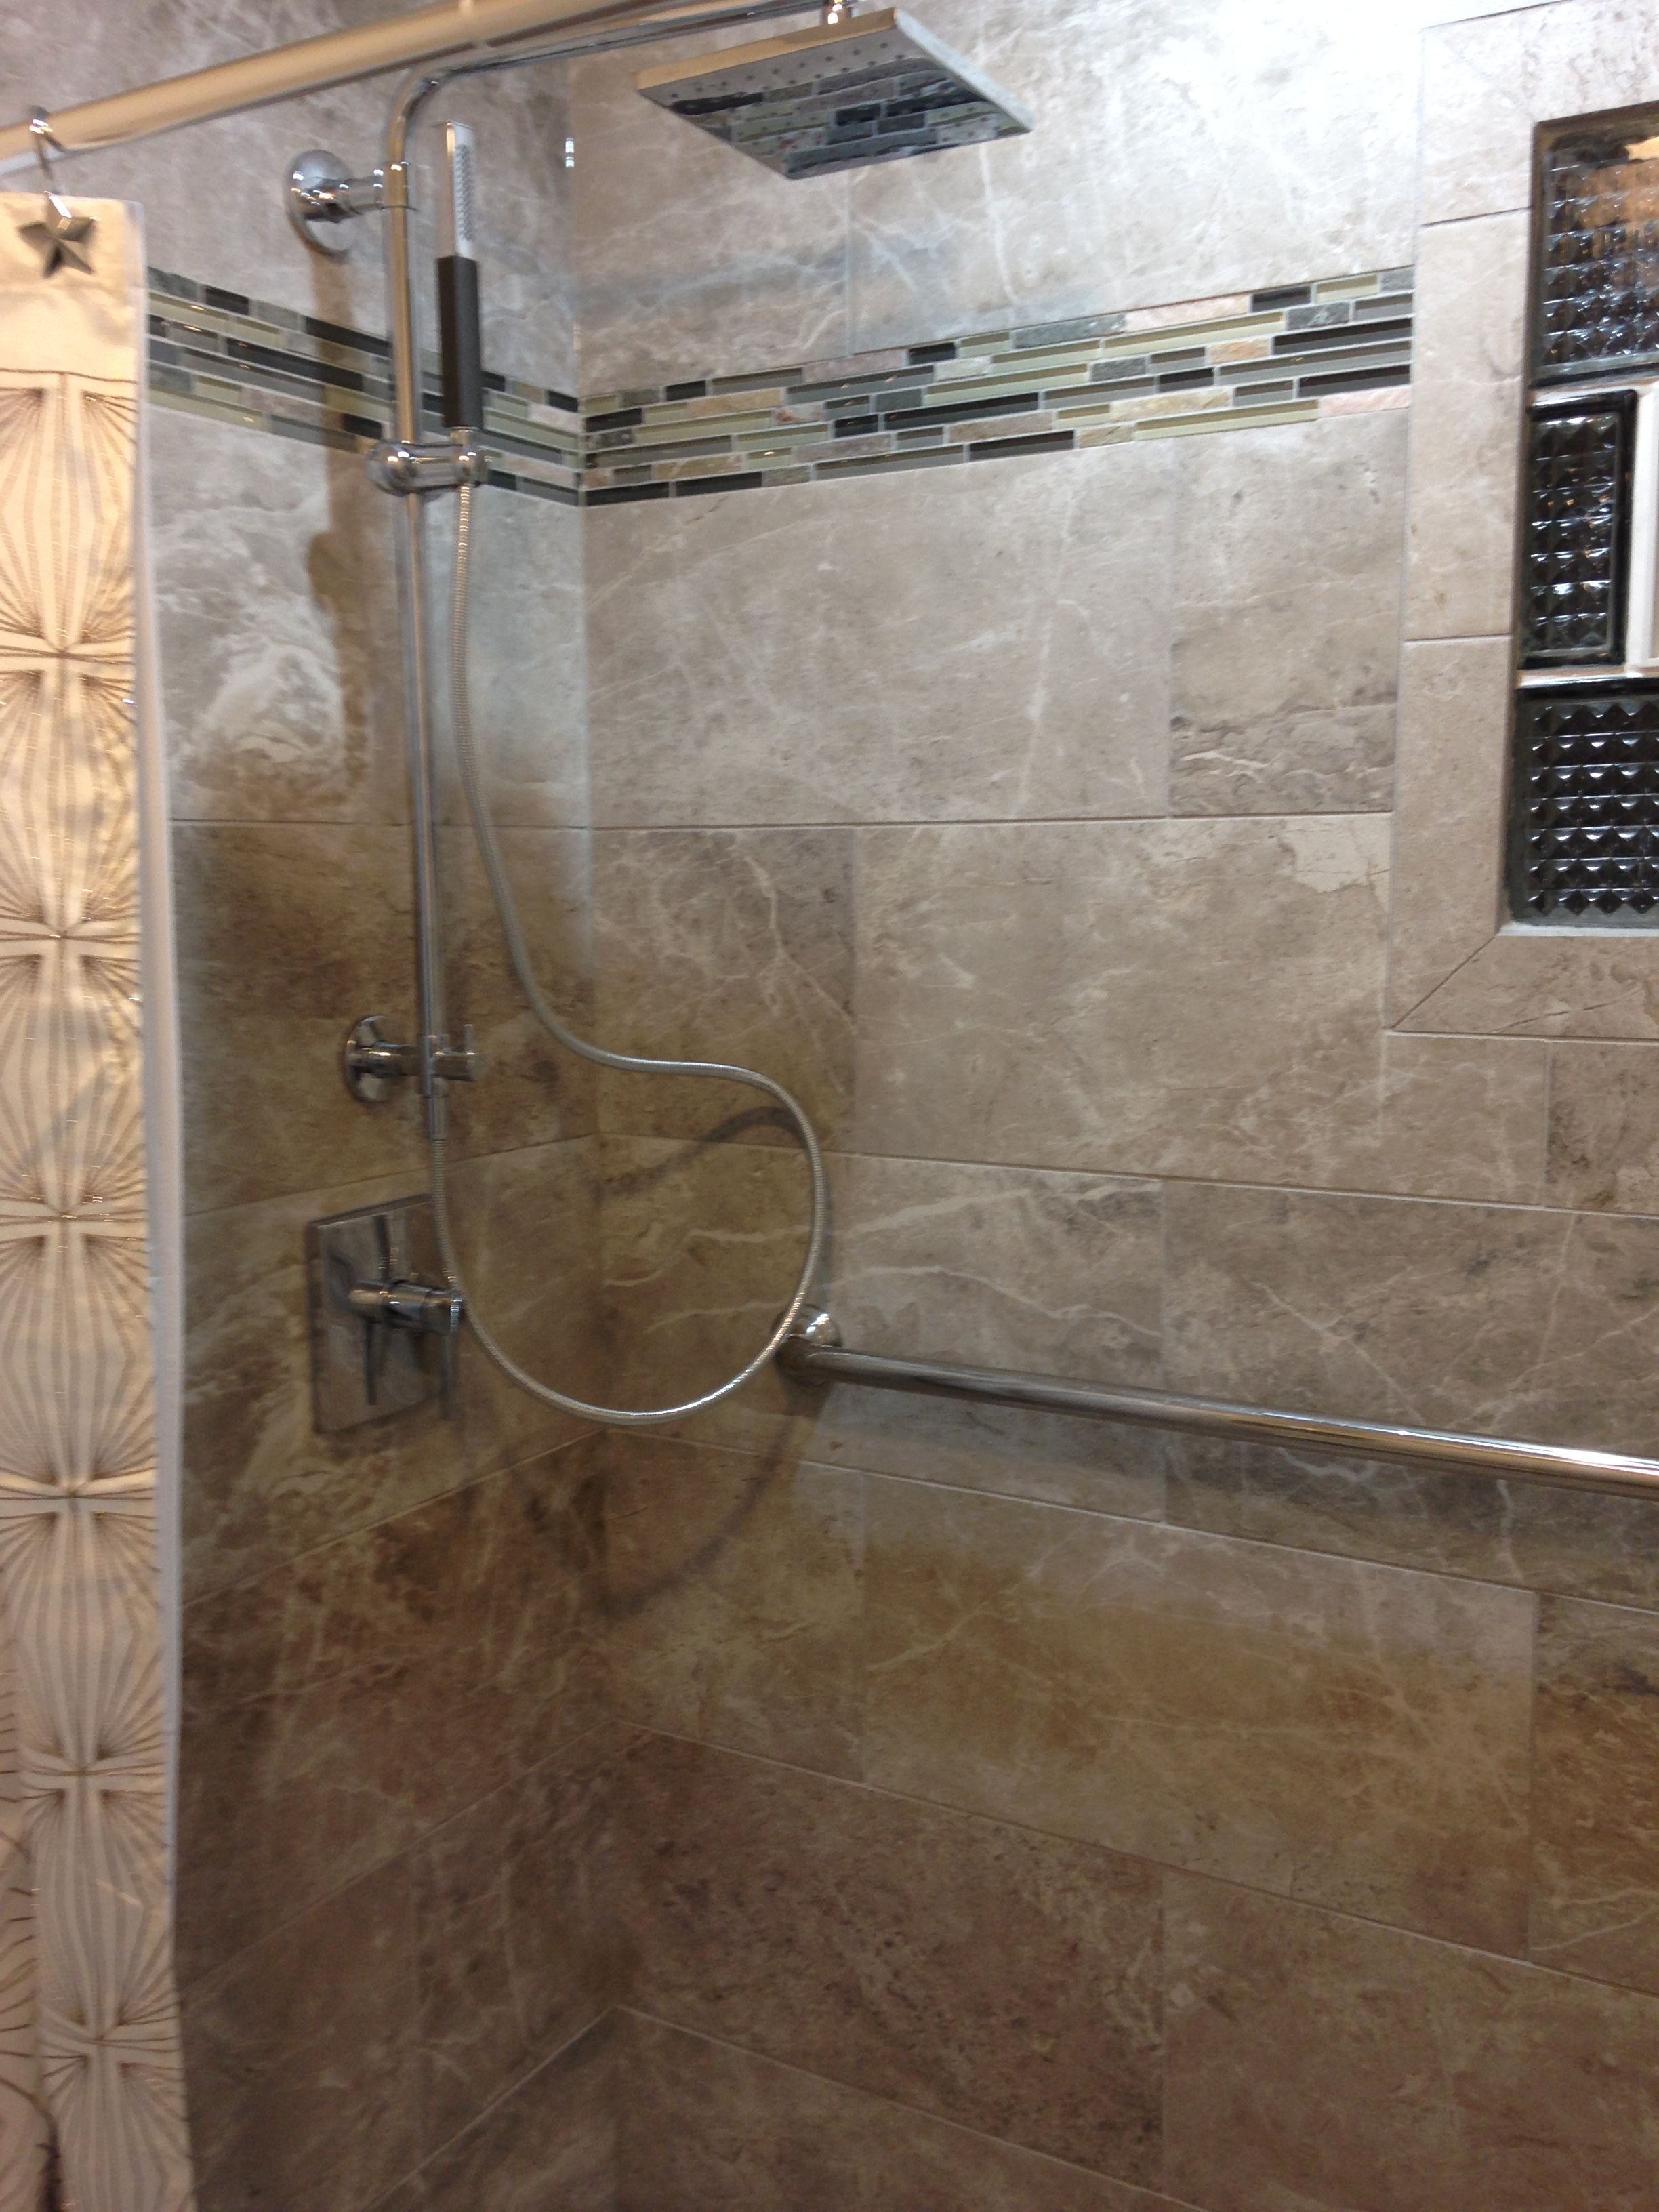 Bathroom Remodel Tile Is From Mid America In Emperor Porcelain Along With Mosaic Trim Kohler Shower System All One Handheld And Rain